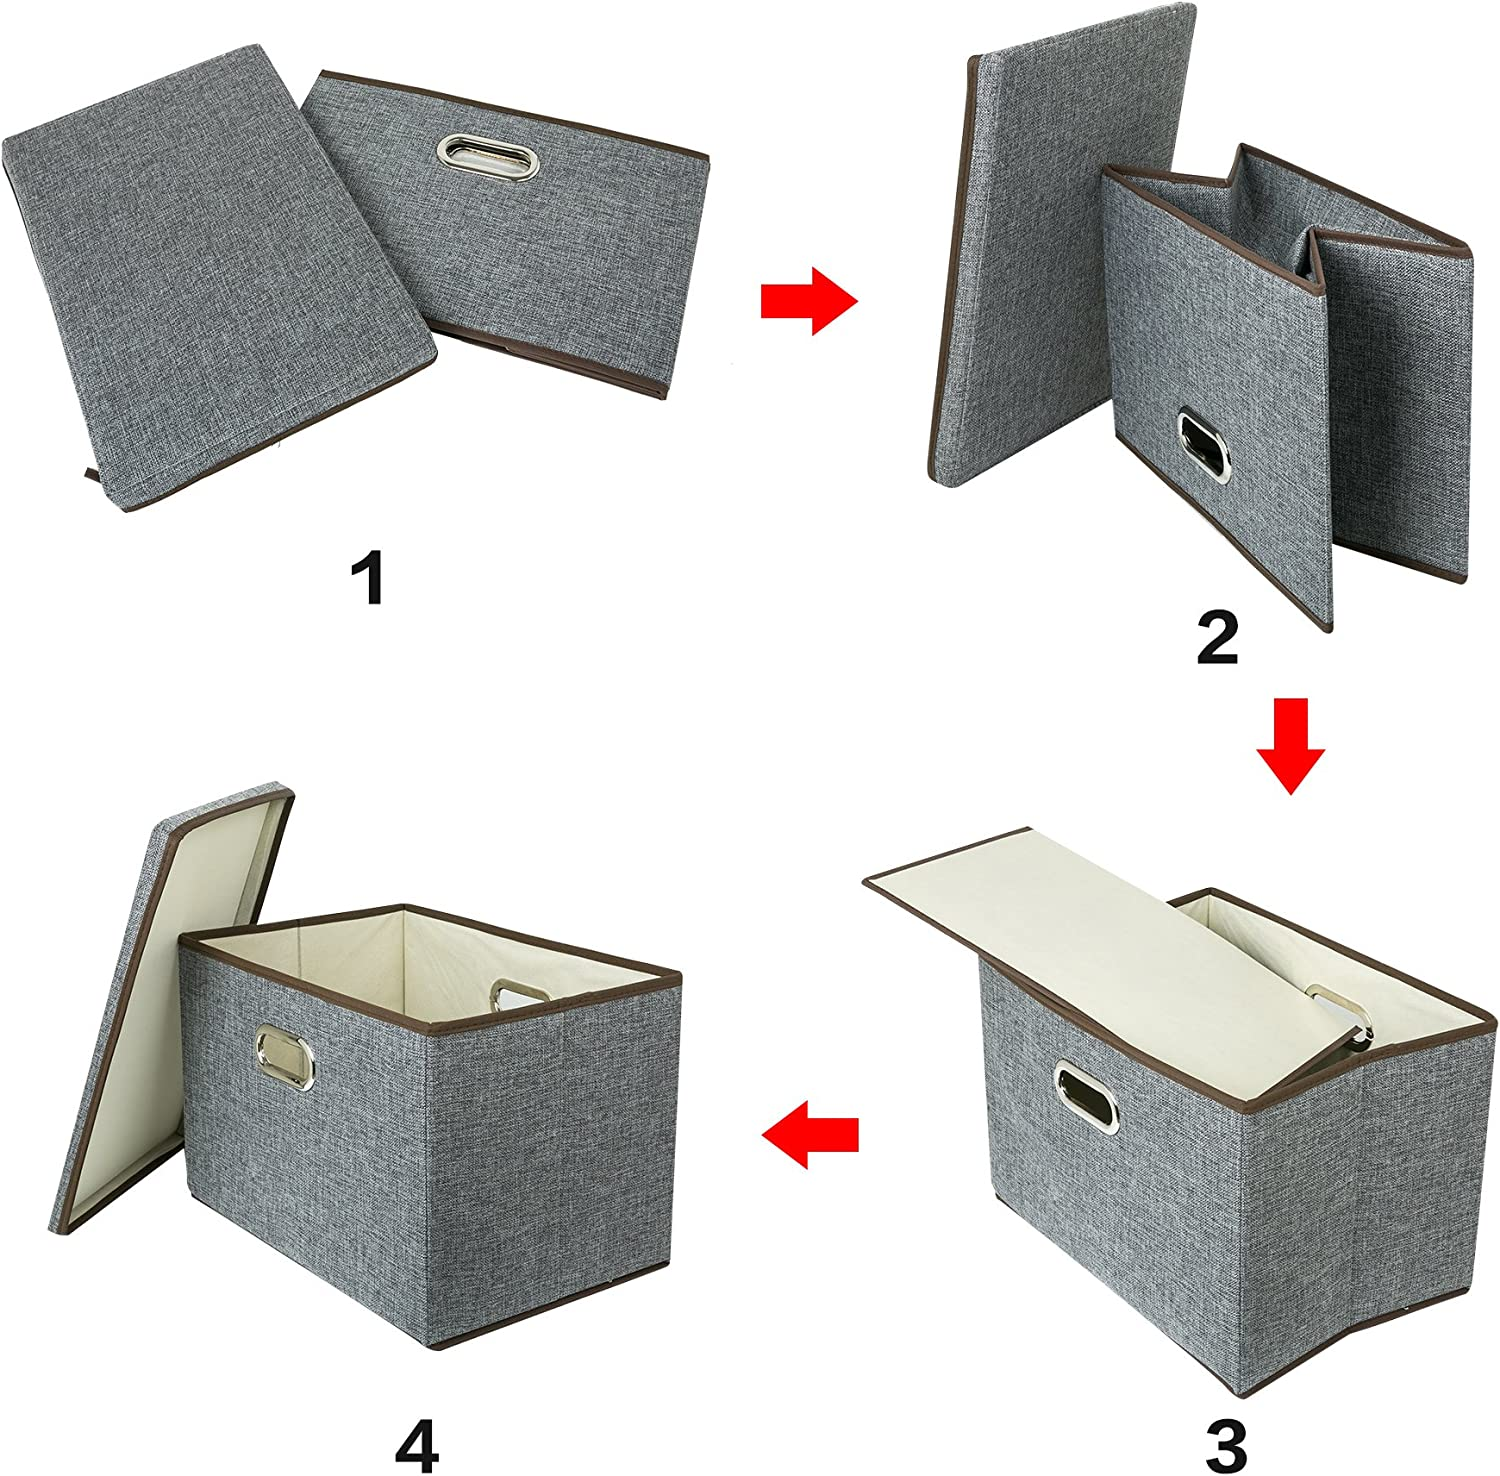 Zonyon Large Storage Box 17.7/'/' Sturdy Collapsible Fabric Storage Bin Container Basket Home Cube Organizer with Removable Lid for Bedroom,Closet,Shelves,Office,Grey,2 Packs